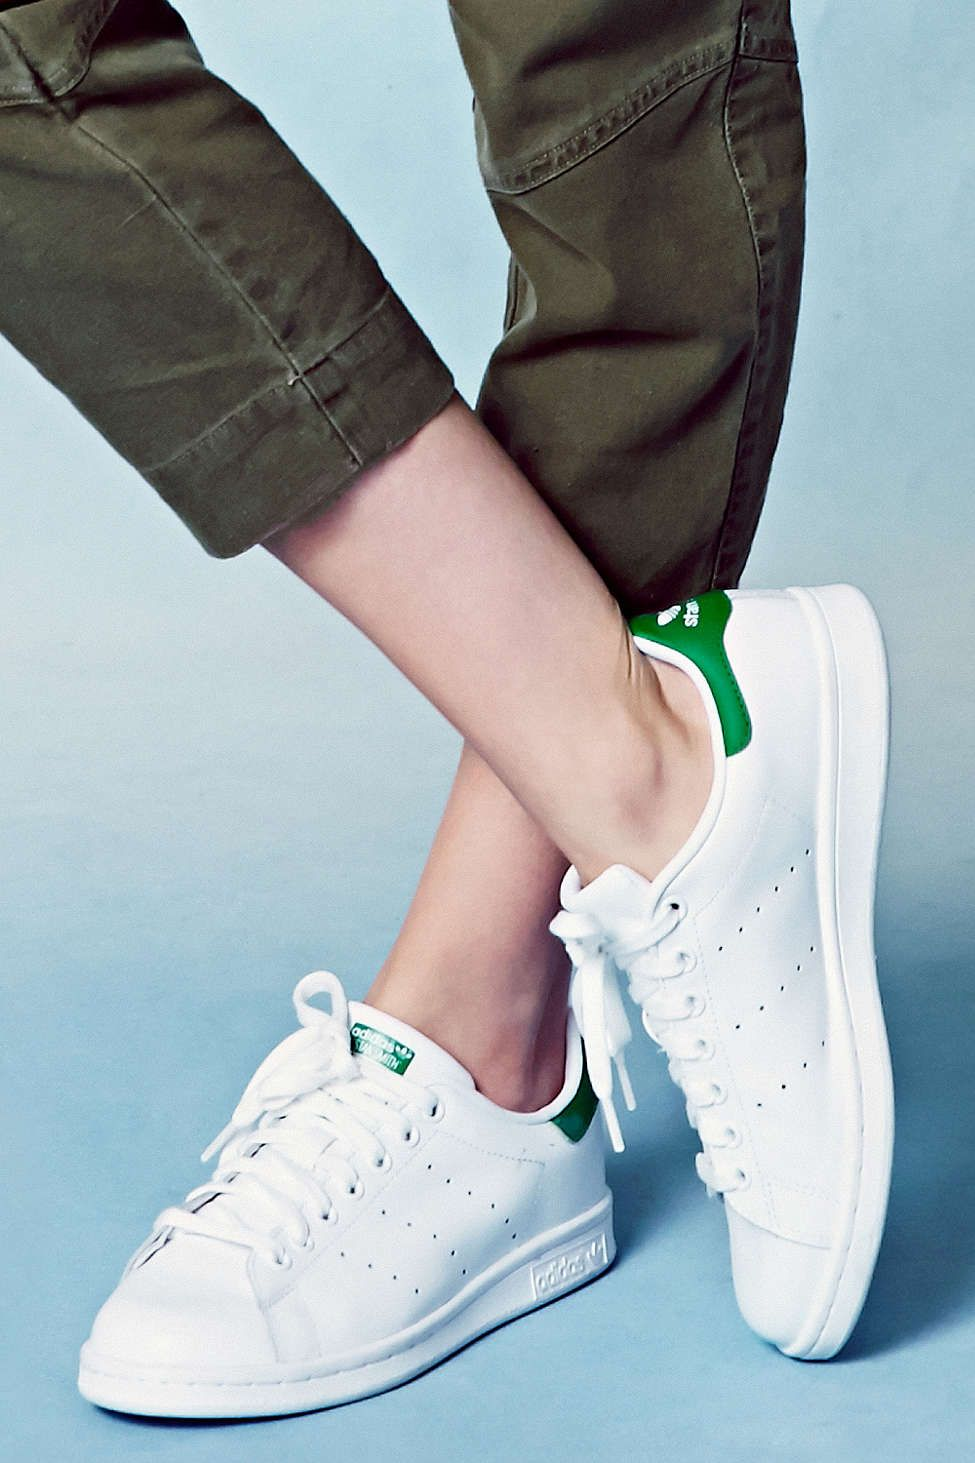 adidas Originals Stan Smith Sneaker | Sneakers adidas women